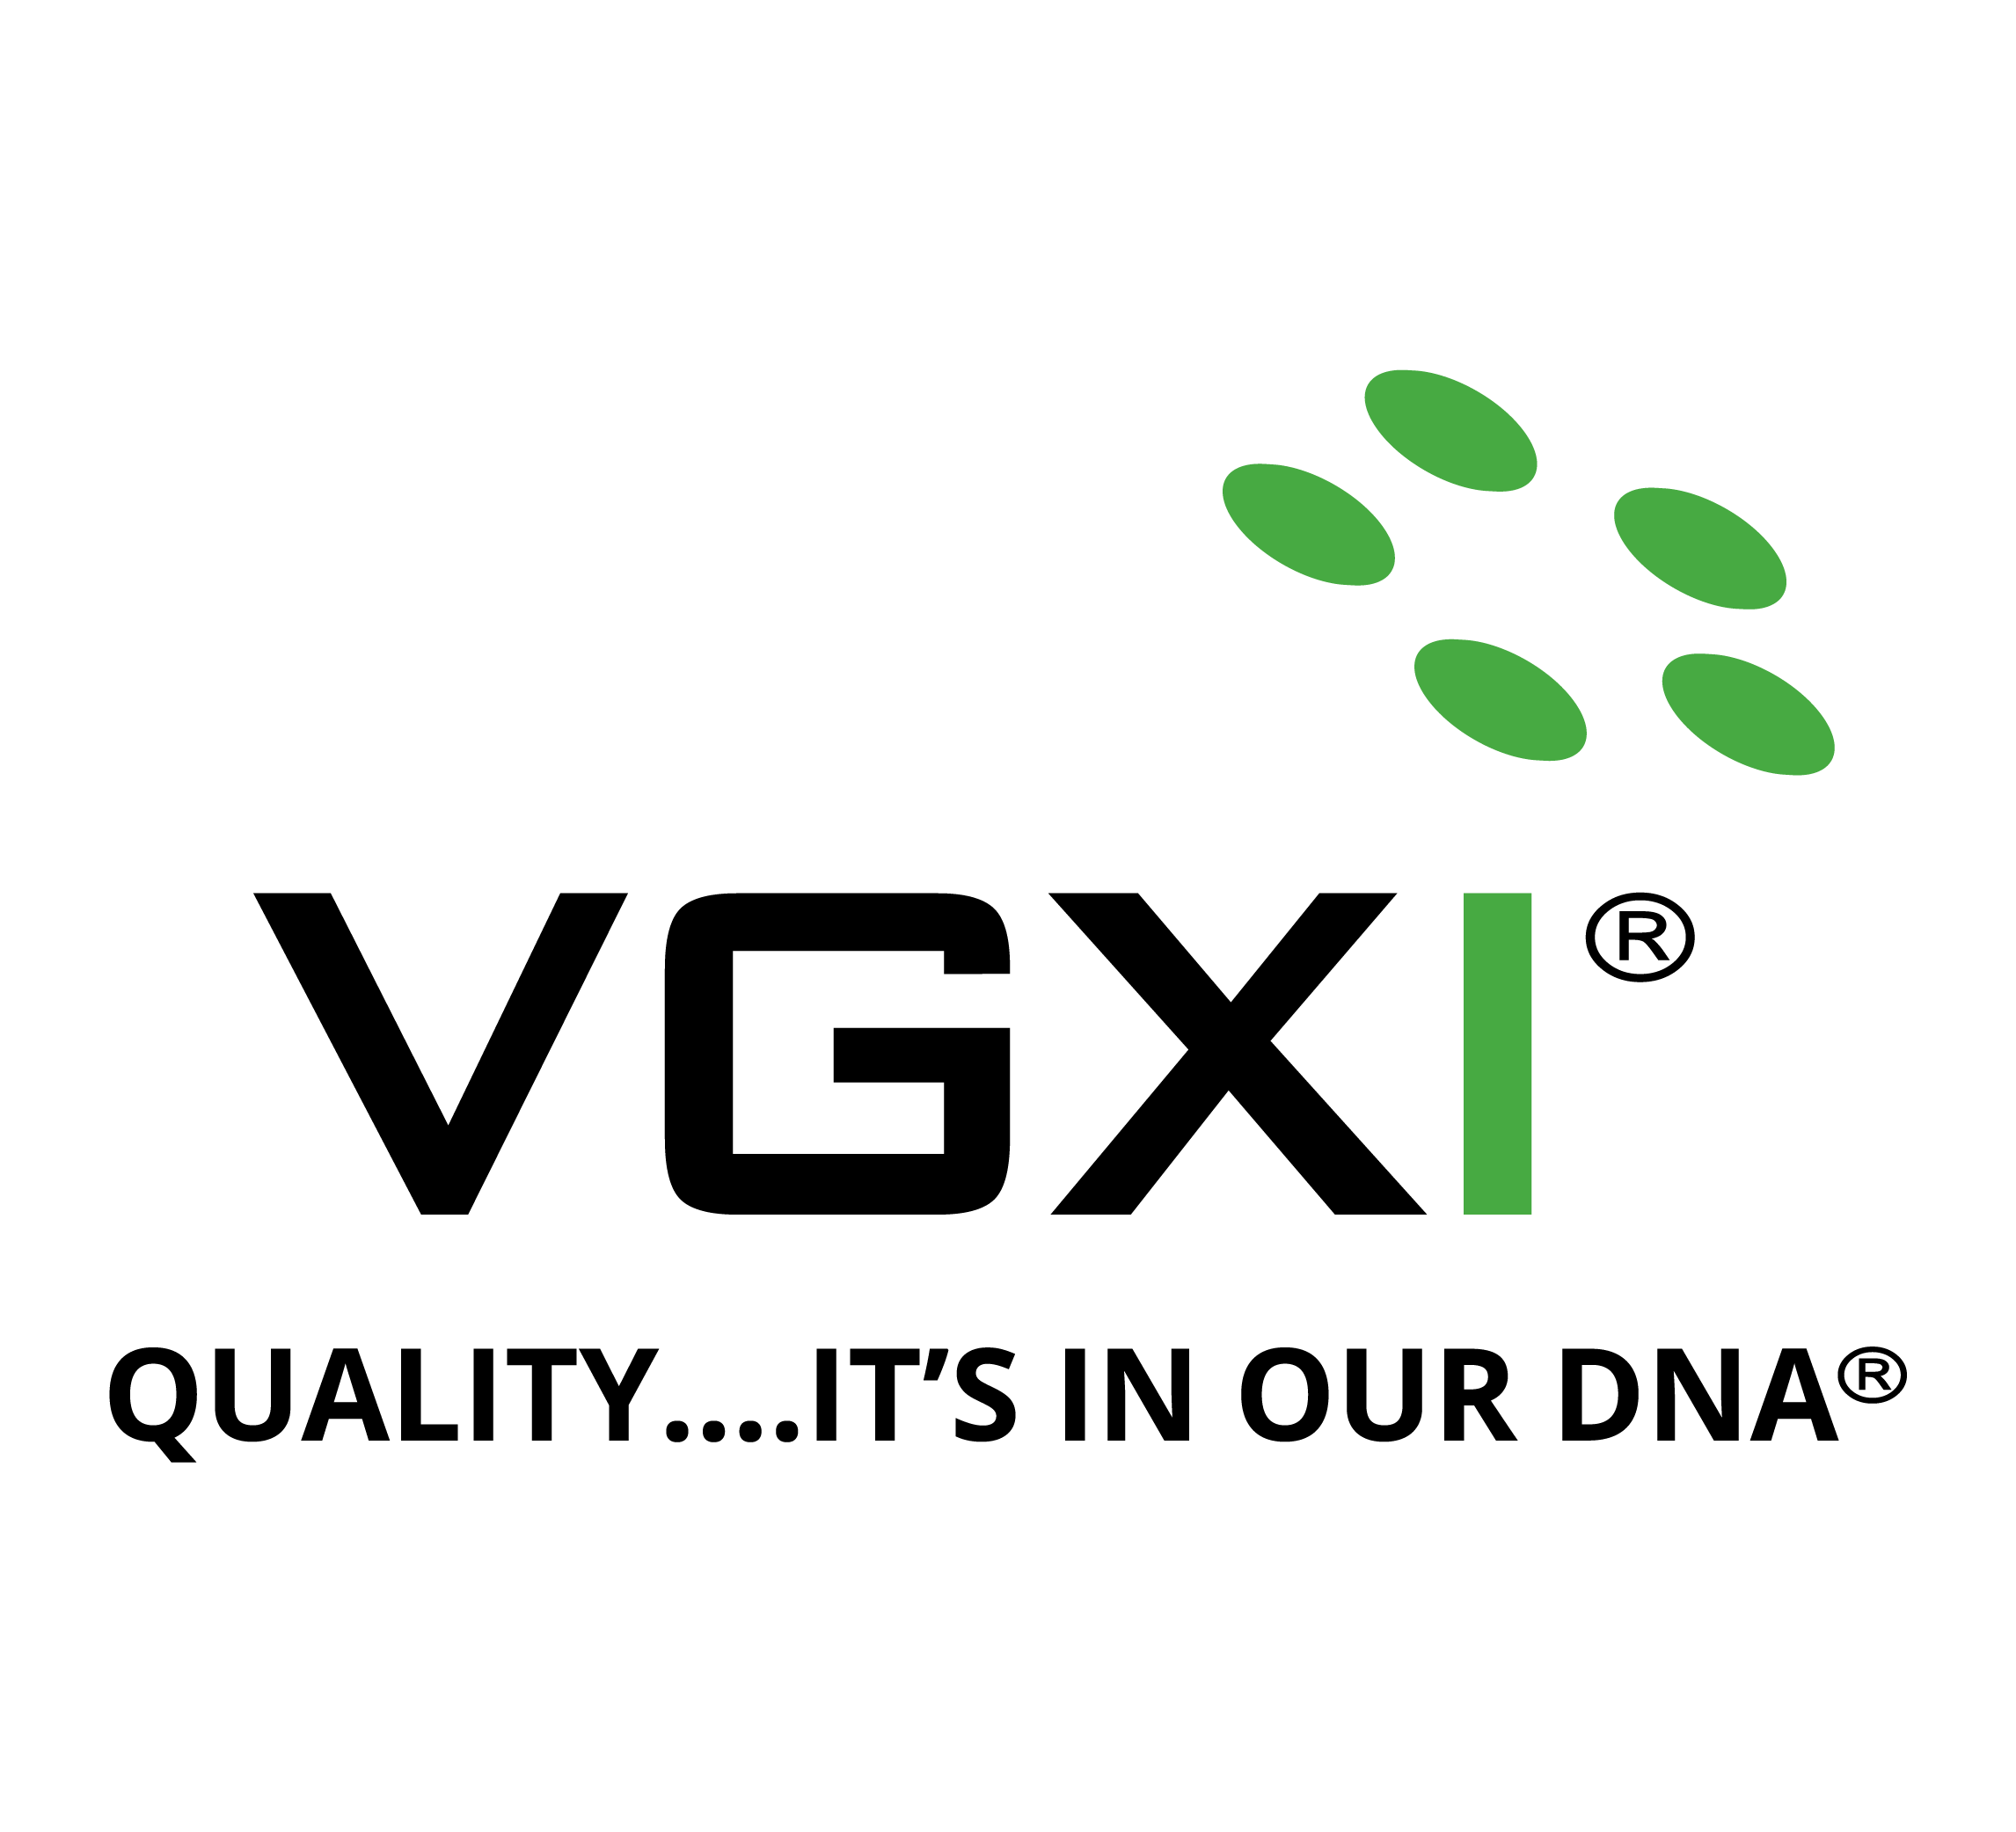 VGXI logo and Quality Tagline_bk gn